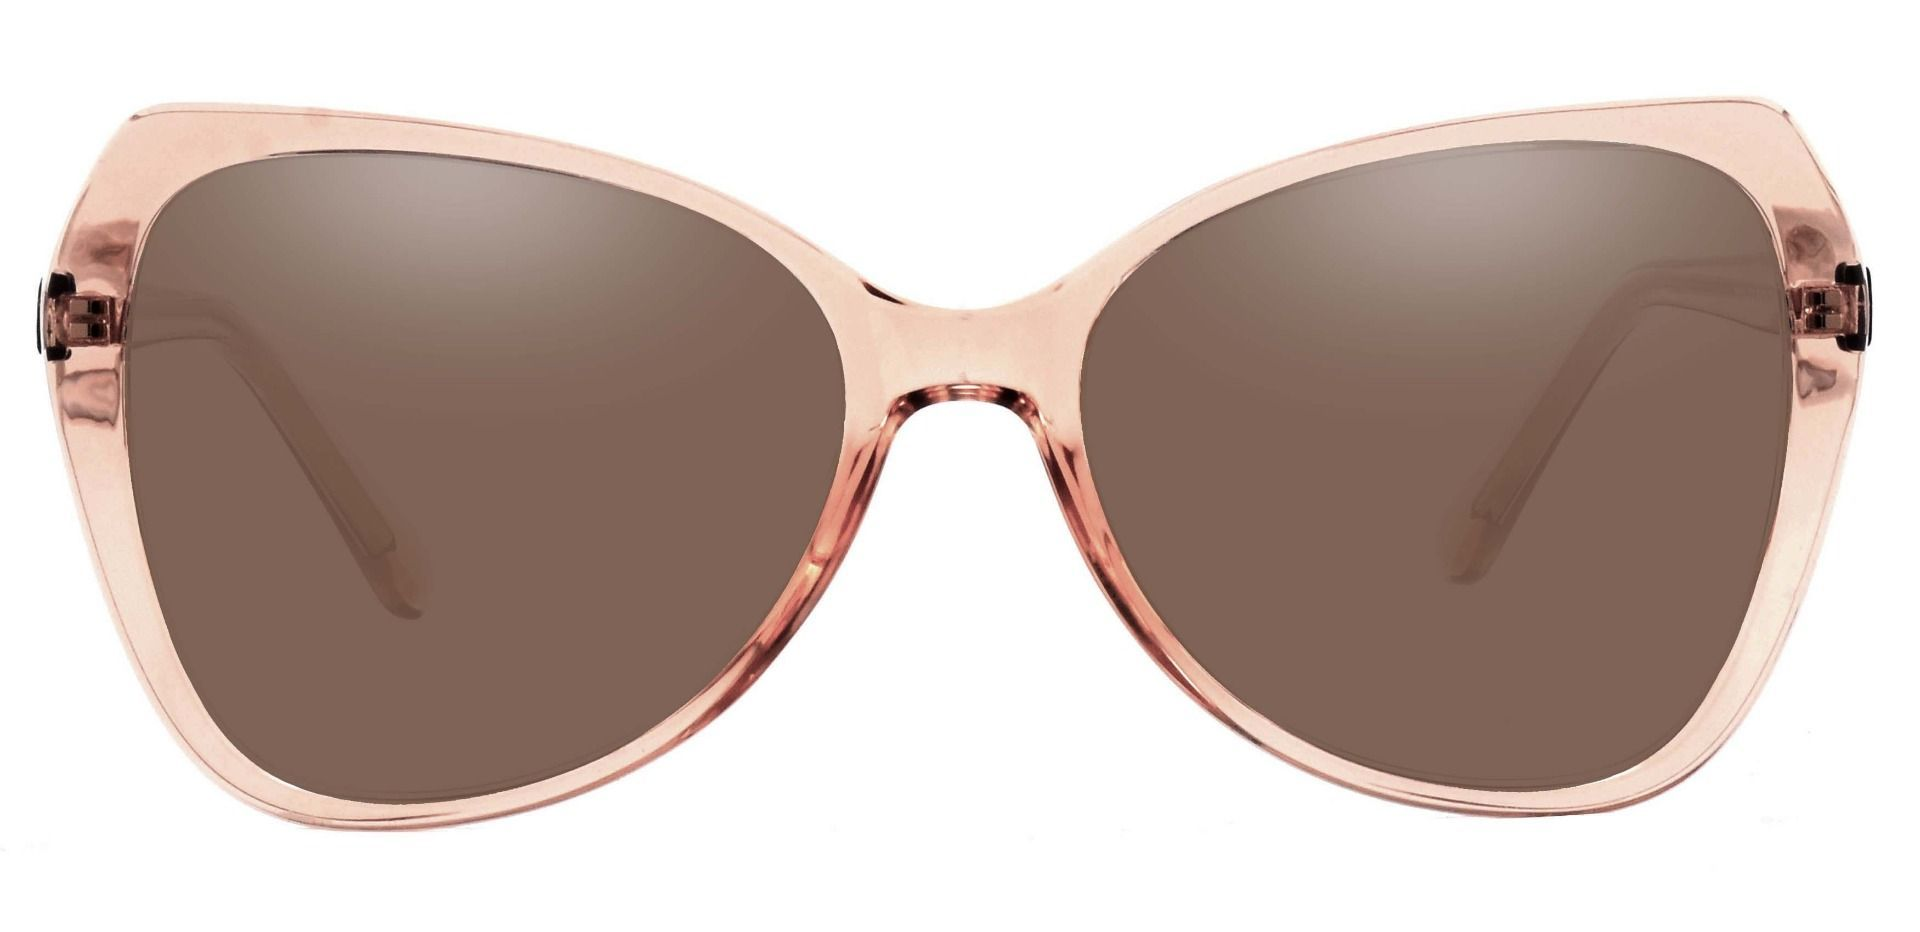 Kayla Geometric Non-Rx Sunglasses - Brown Frame With Brown Lenses